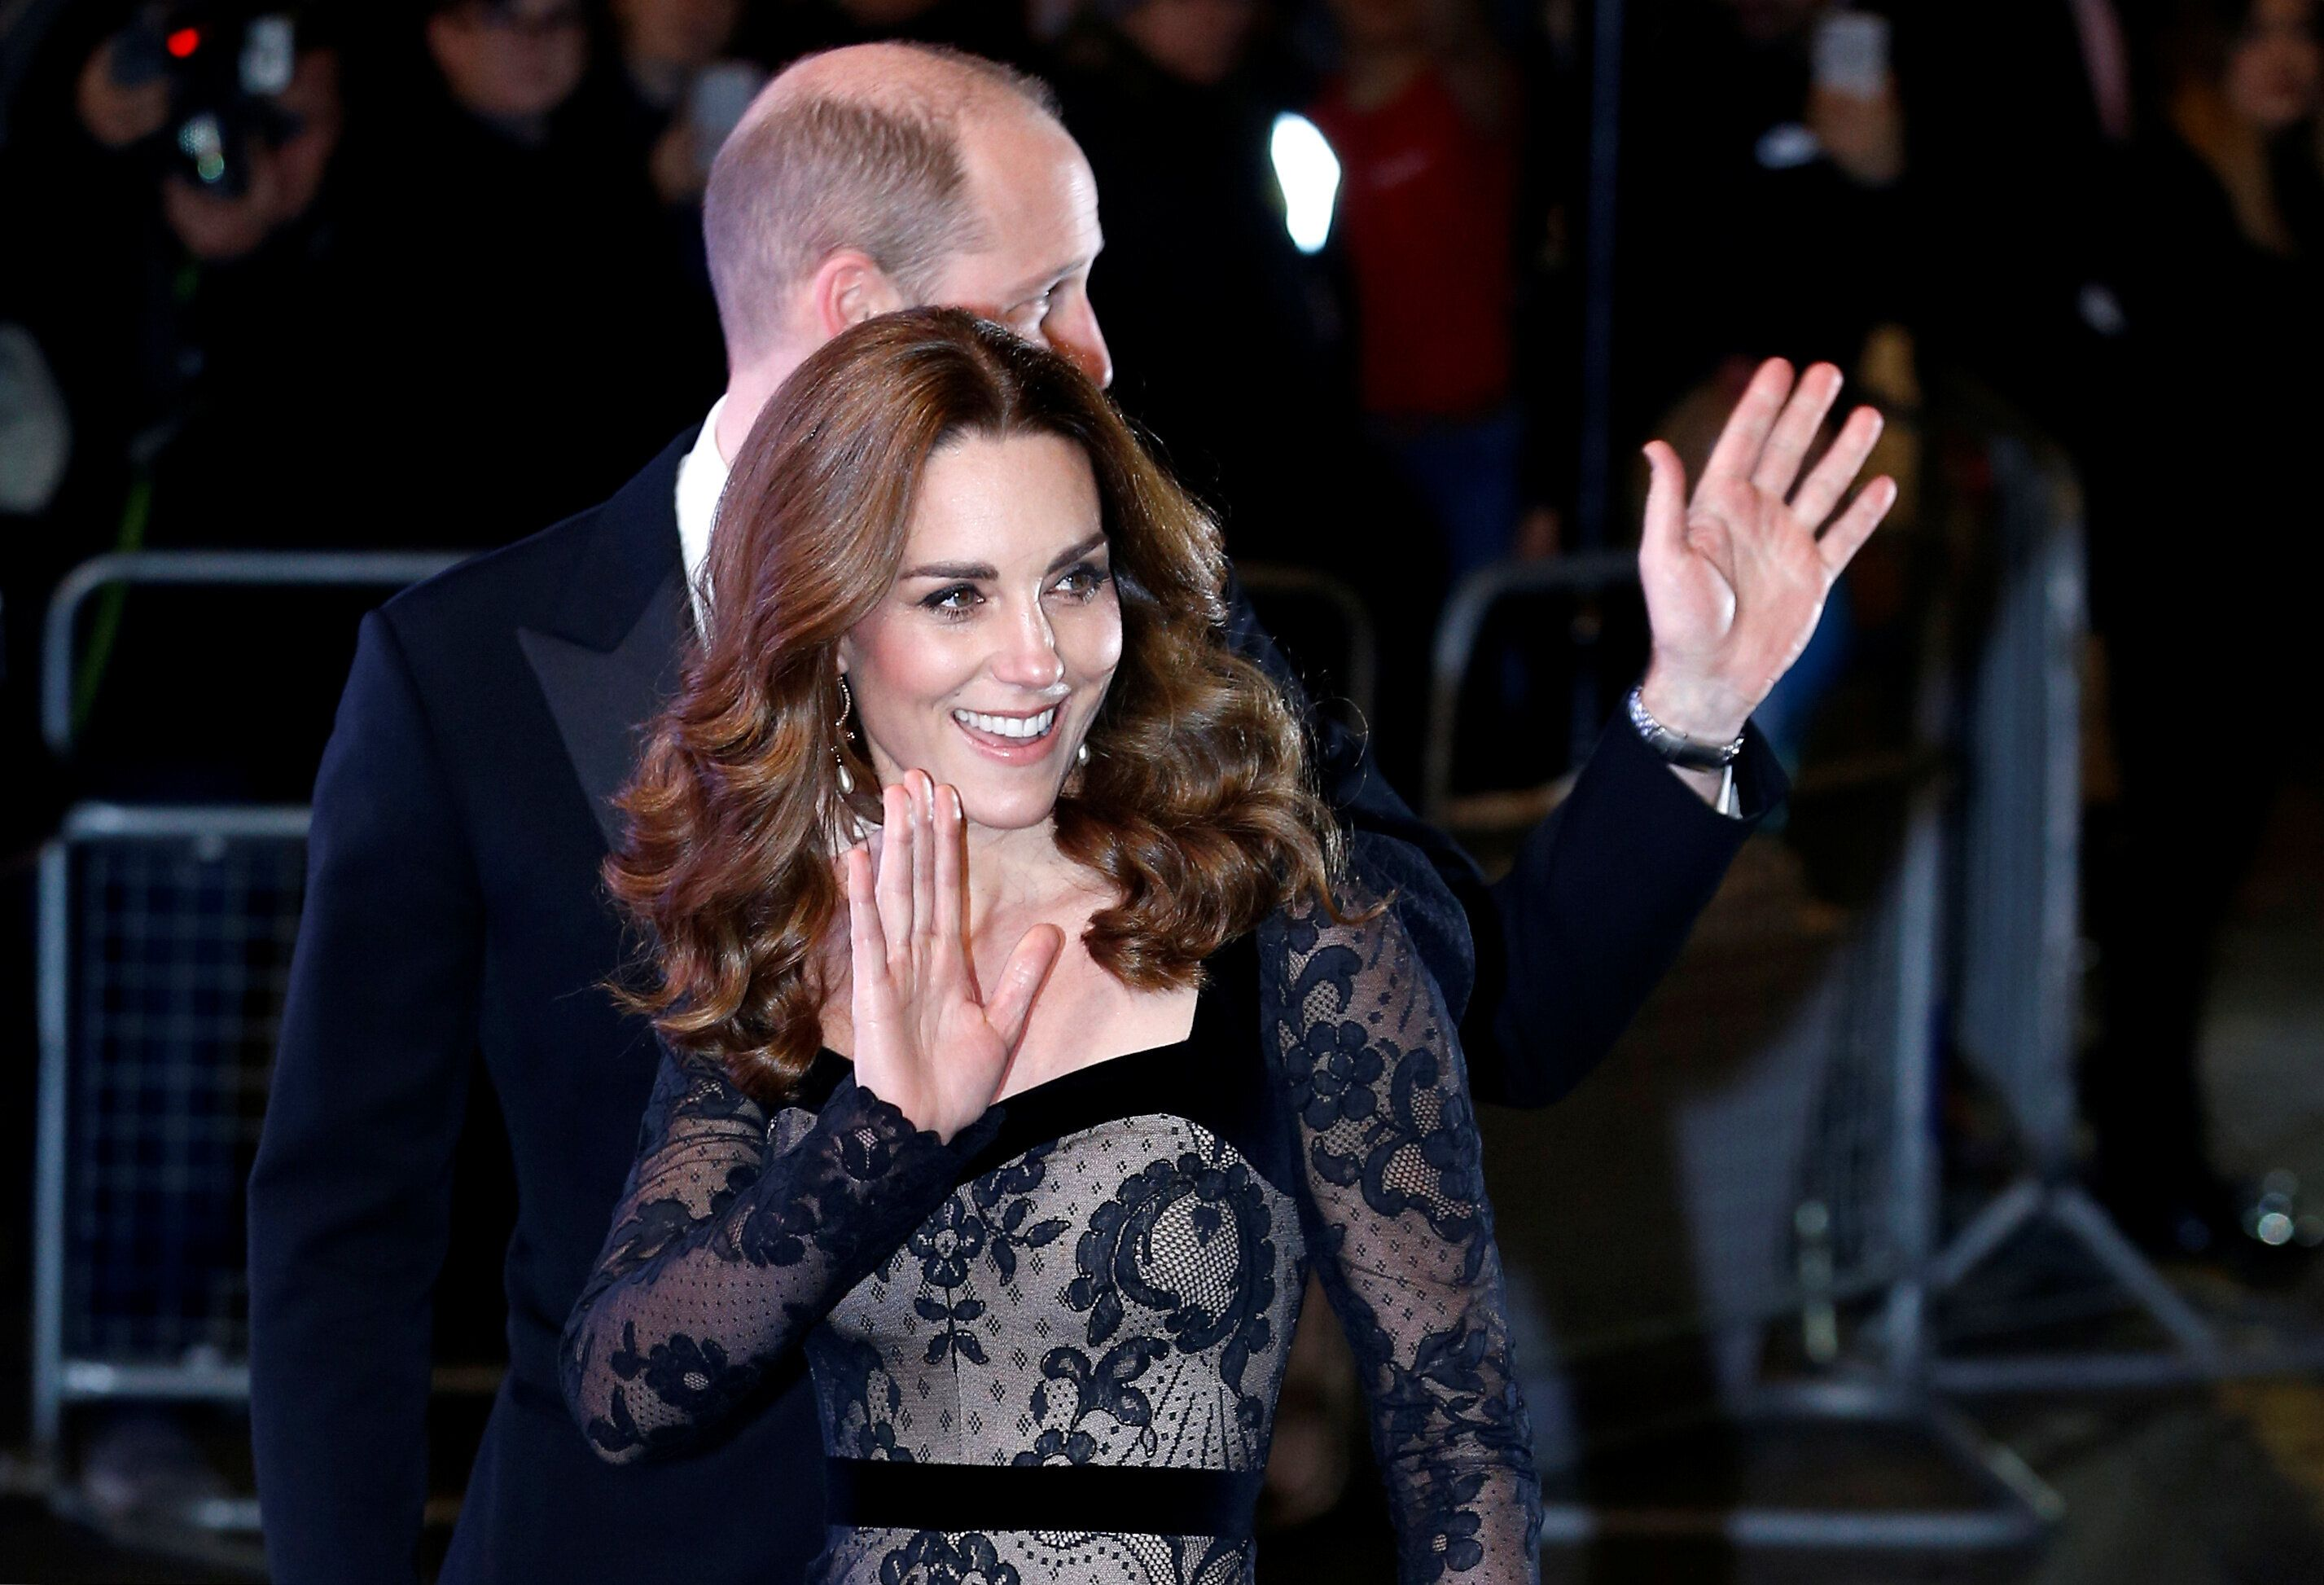 The royals are pictured waving to the crowds as they walked into the theater.